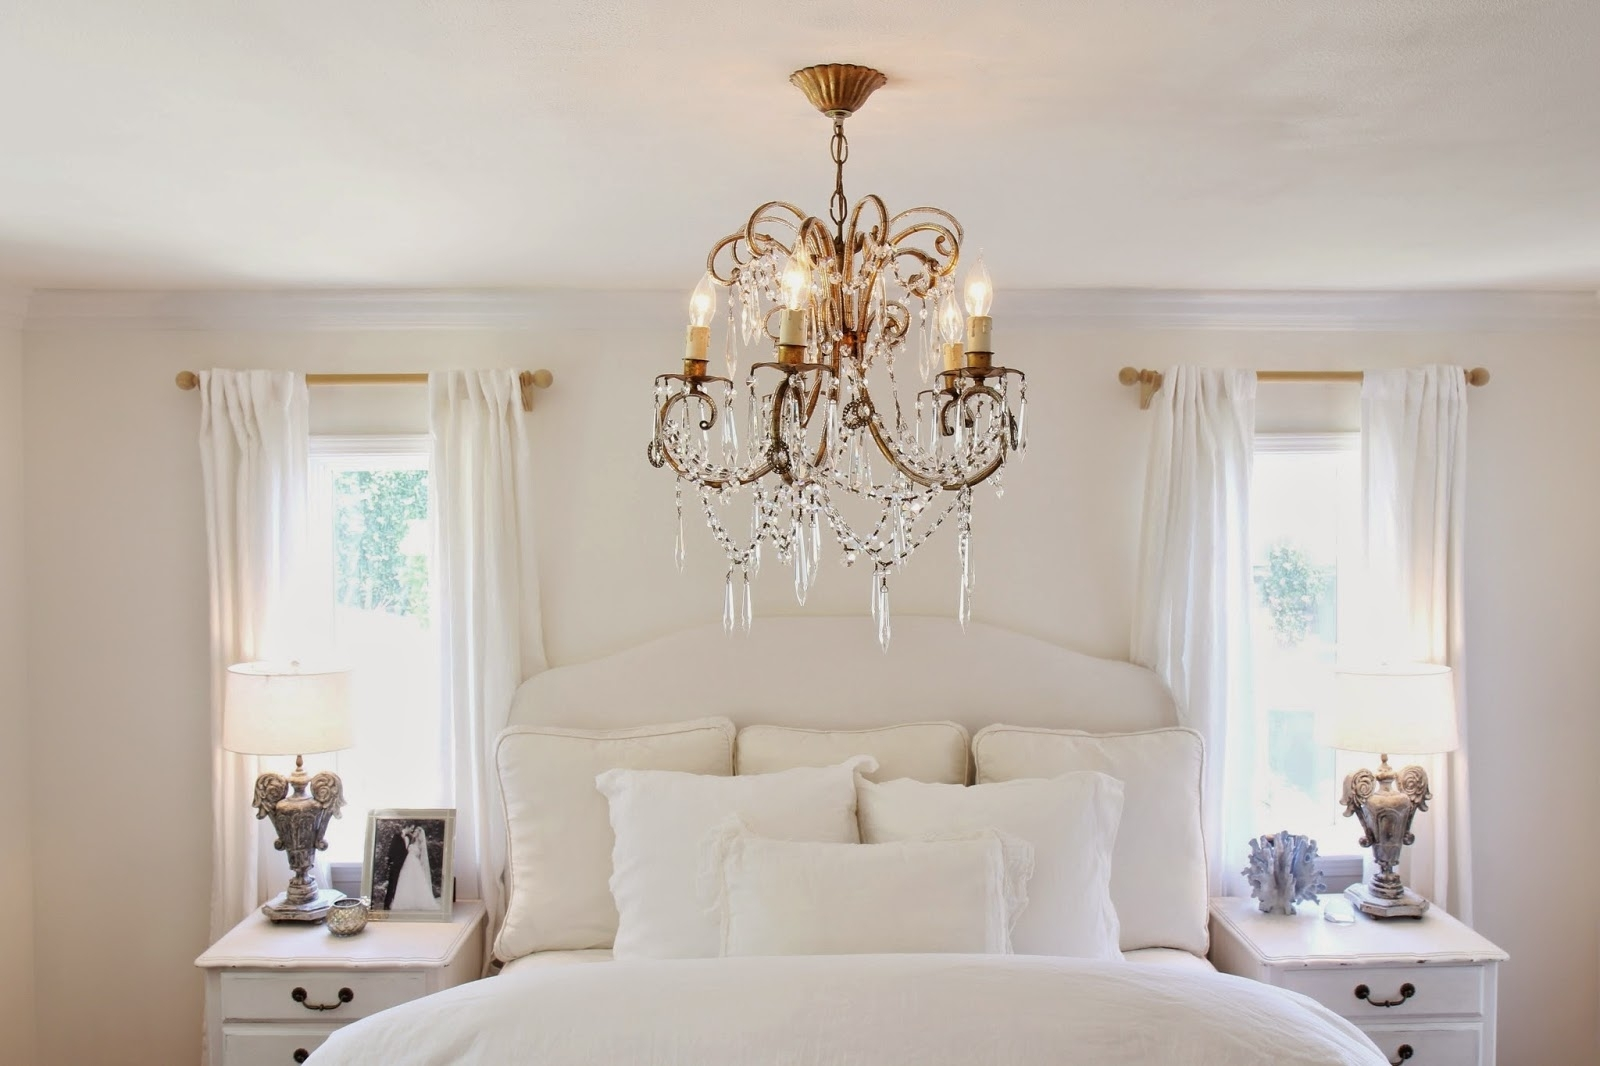 Chandeliers In The Bedroom With Regard To Fashionable Nora's Nest: A Chandelier For The Master Bedroom (View 9 of 15)